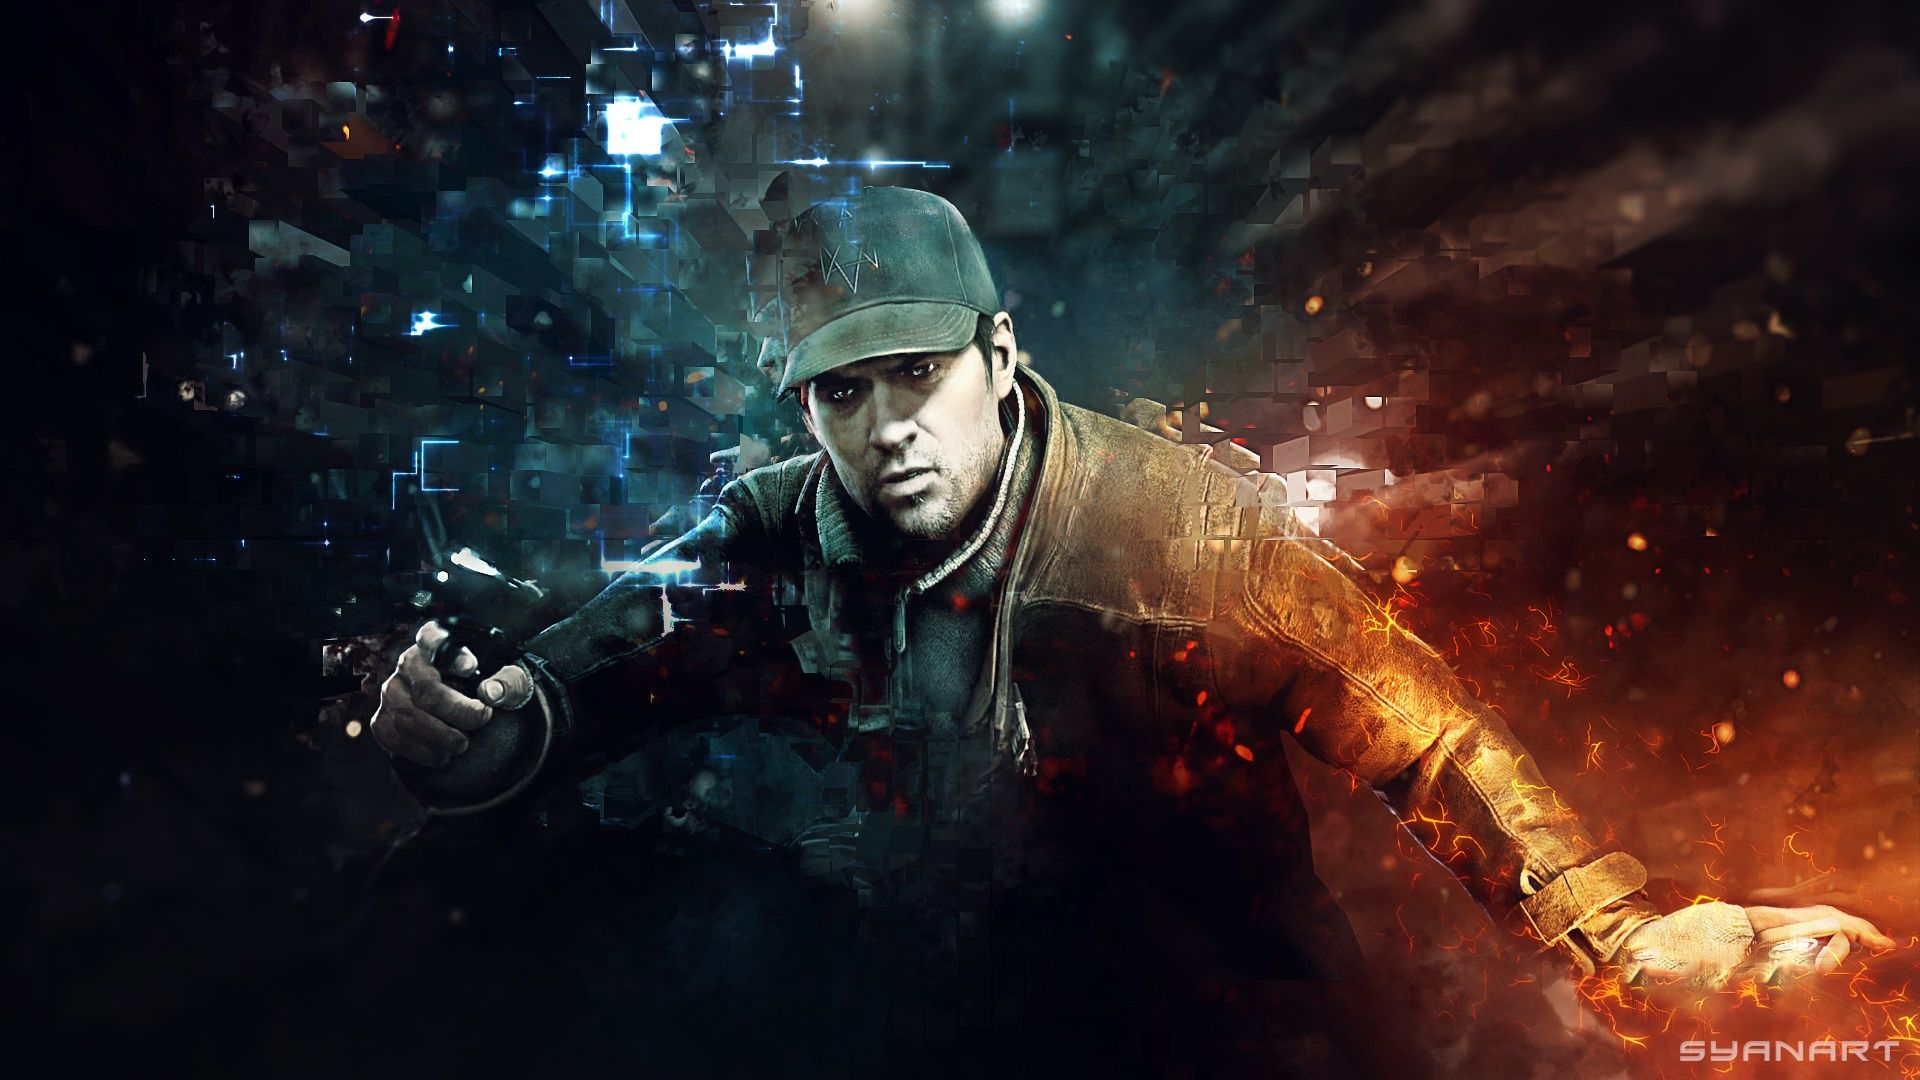 Aiden Pearce Watch Dogs Wallpapers X With Images Watch Dogs Images, Photos, Reviews